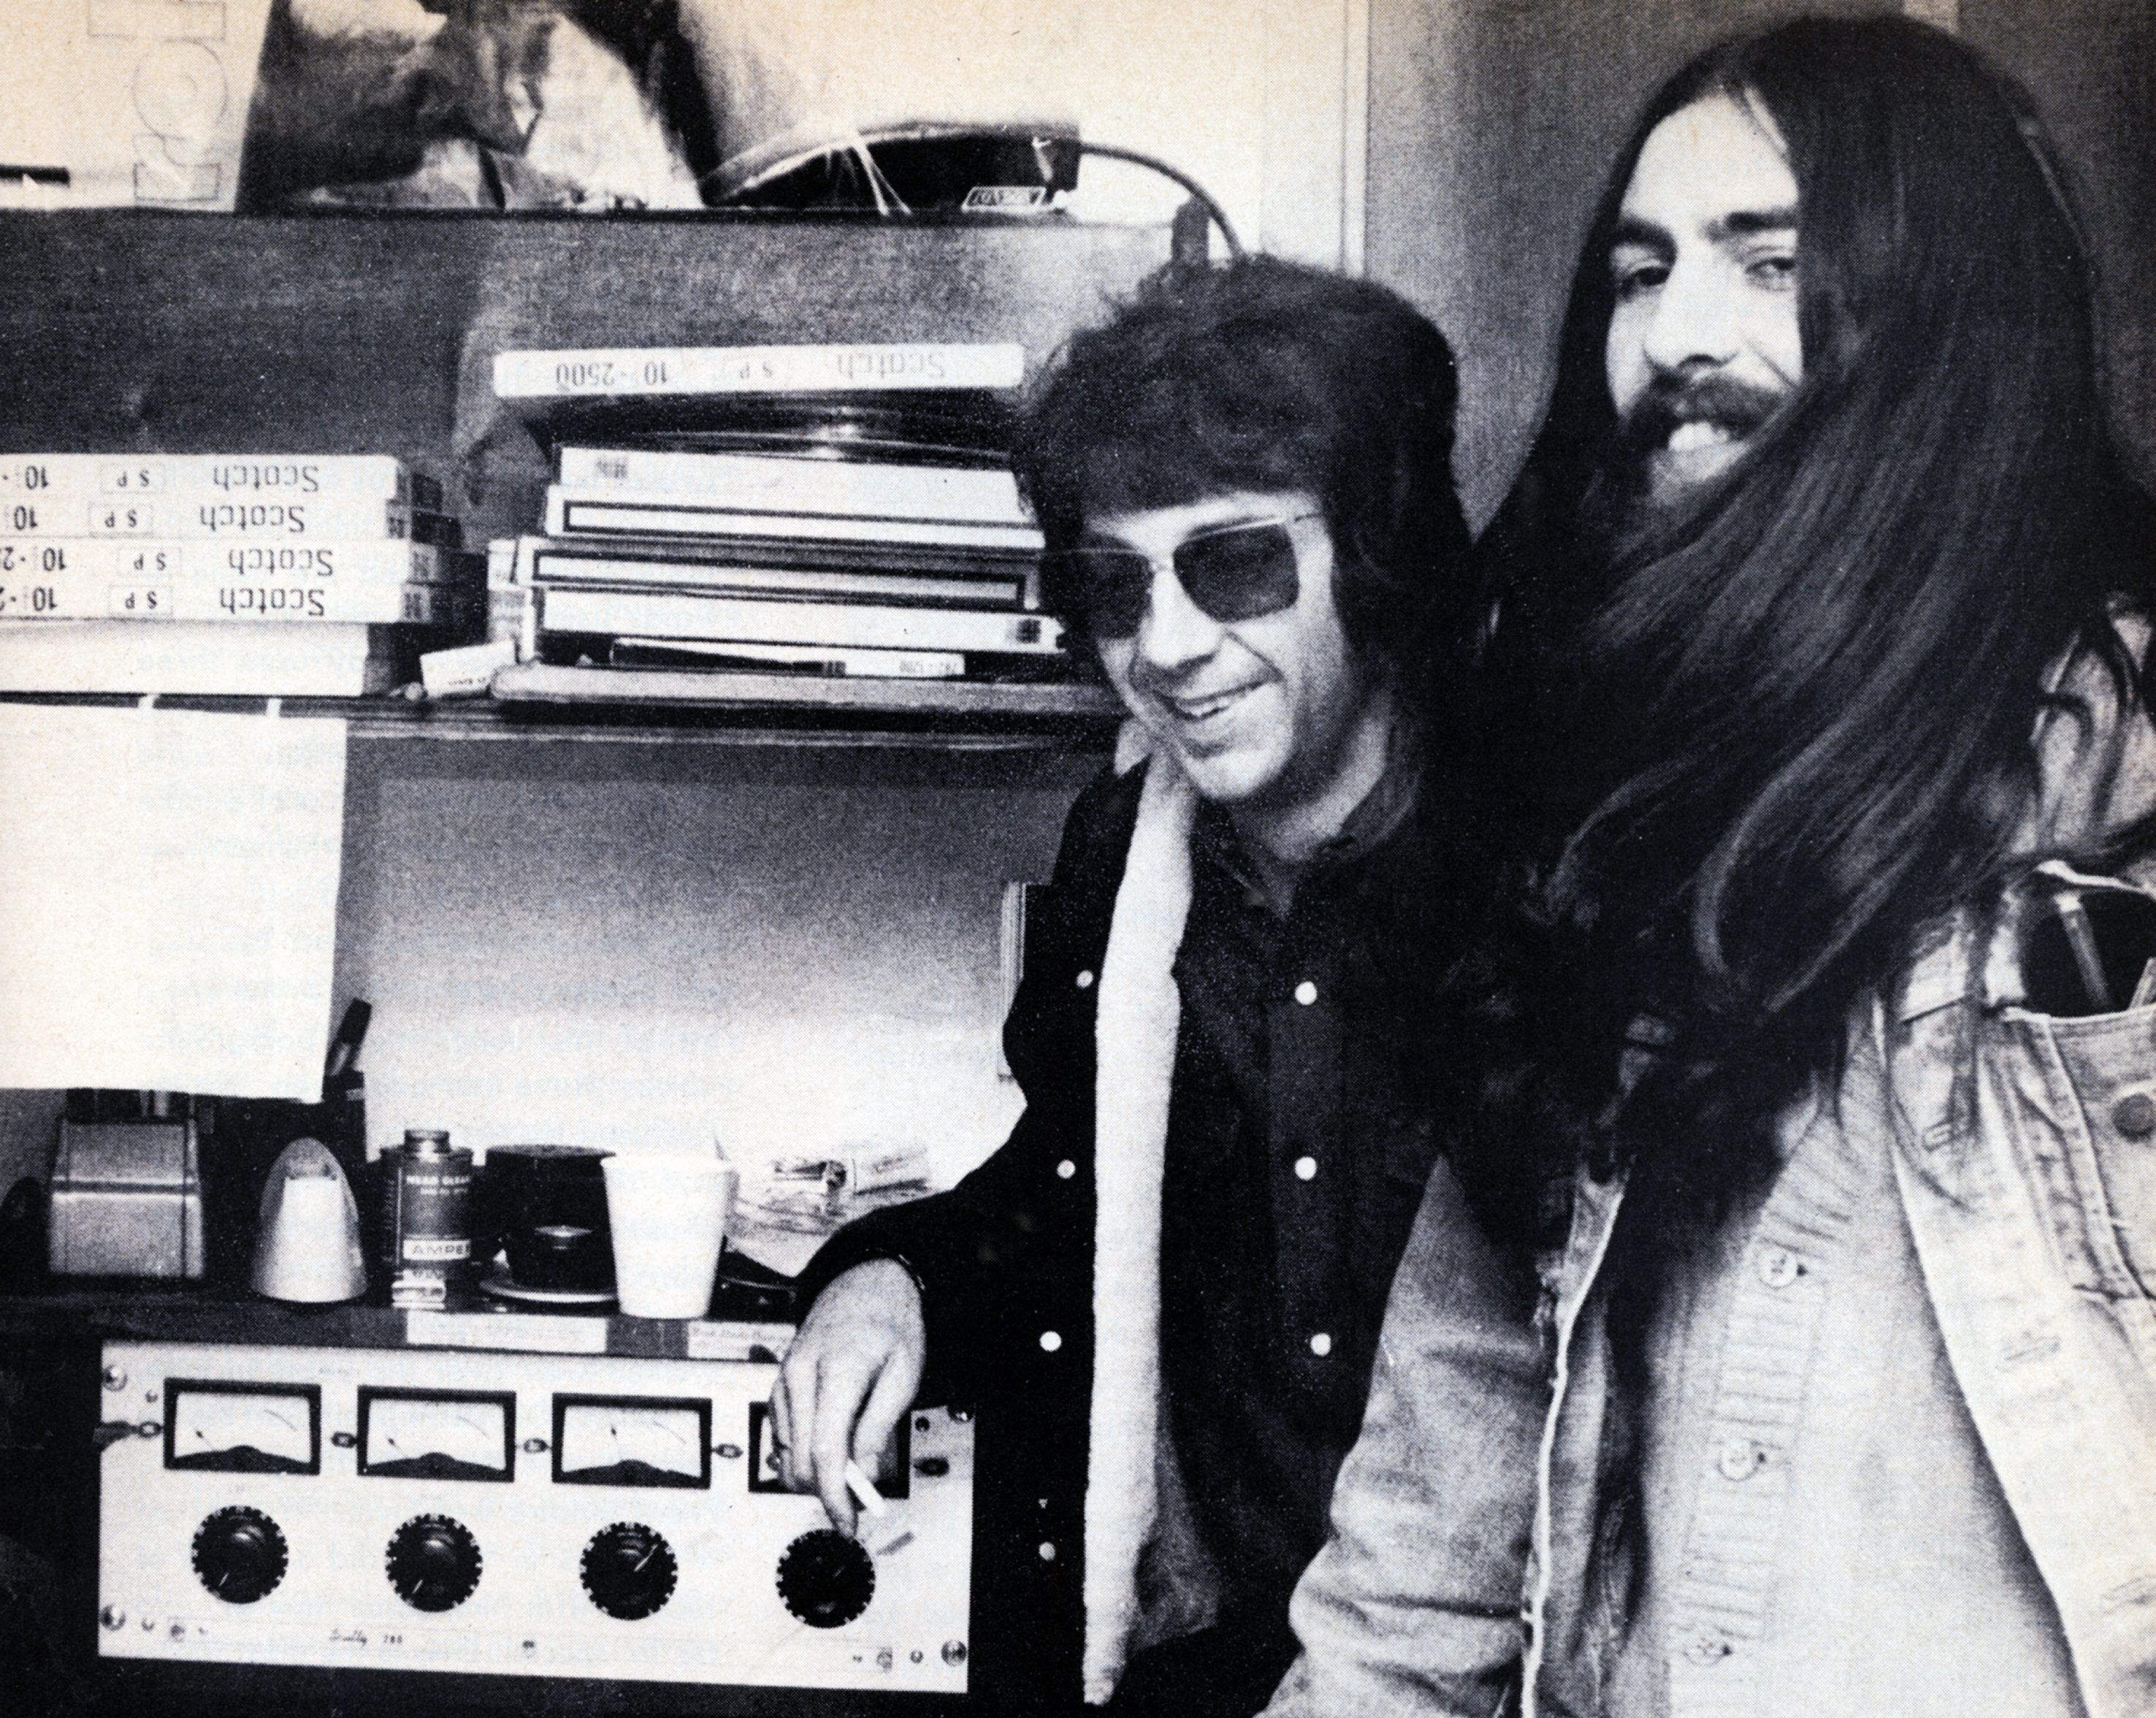 Spector and George Harrison in the 1970s.